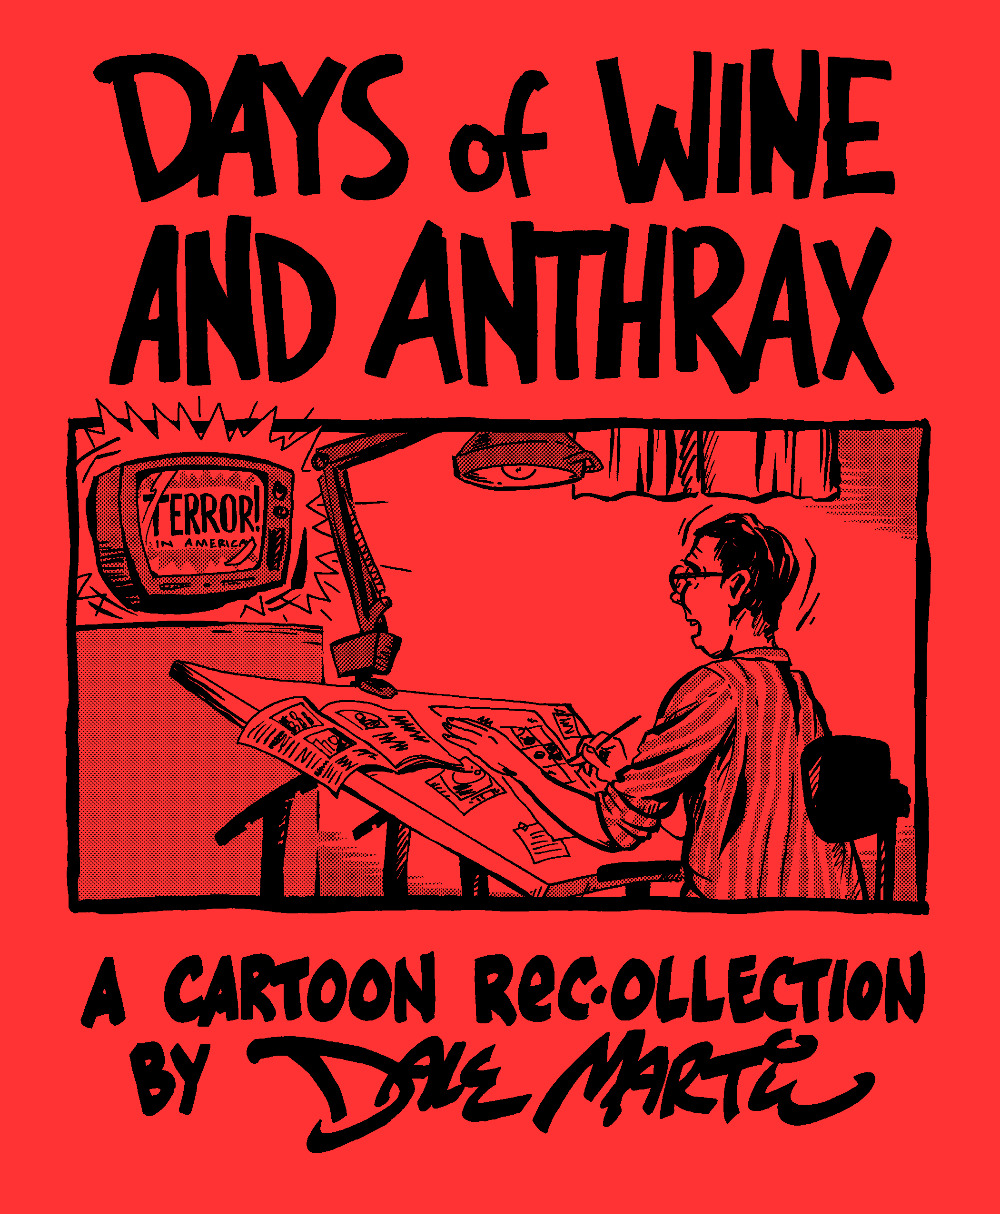 Days of Wine and Anthrax